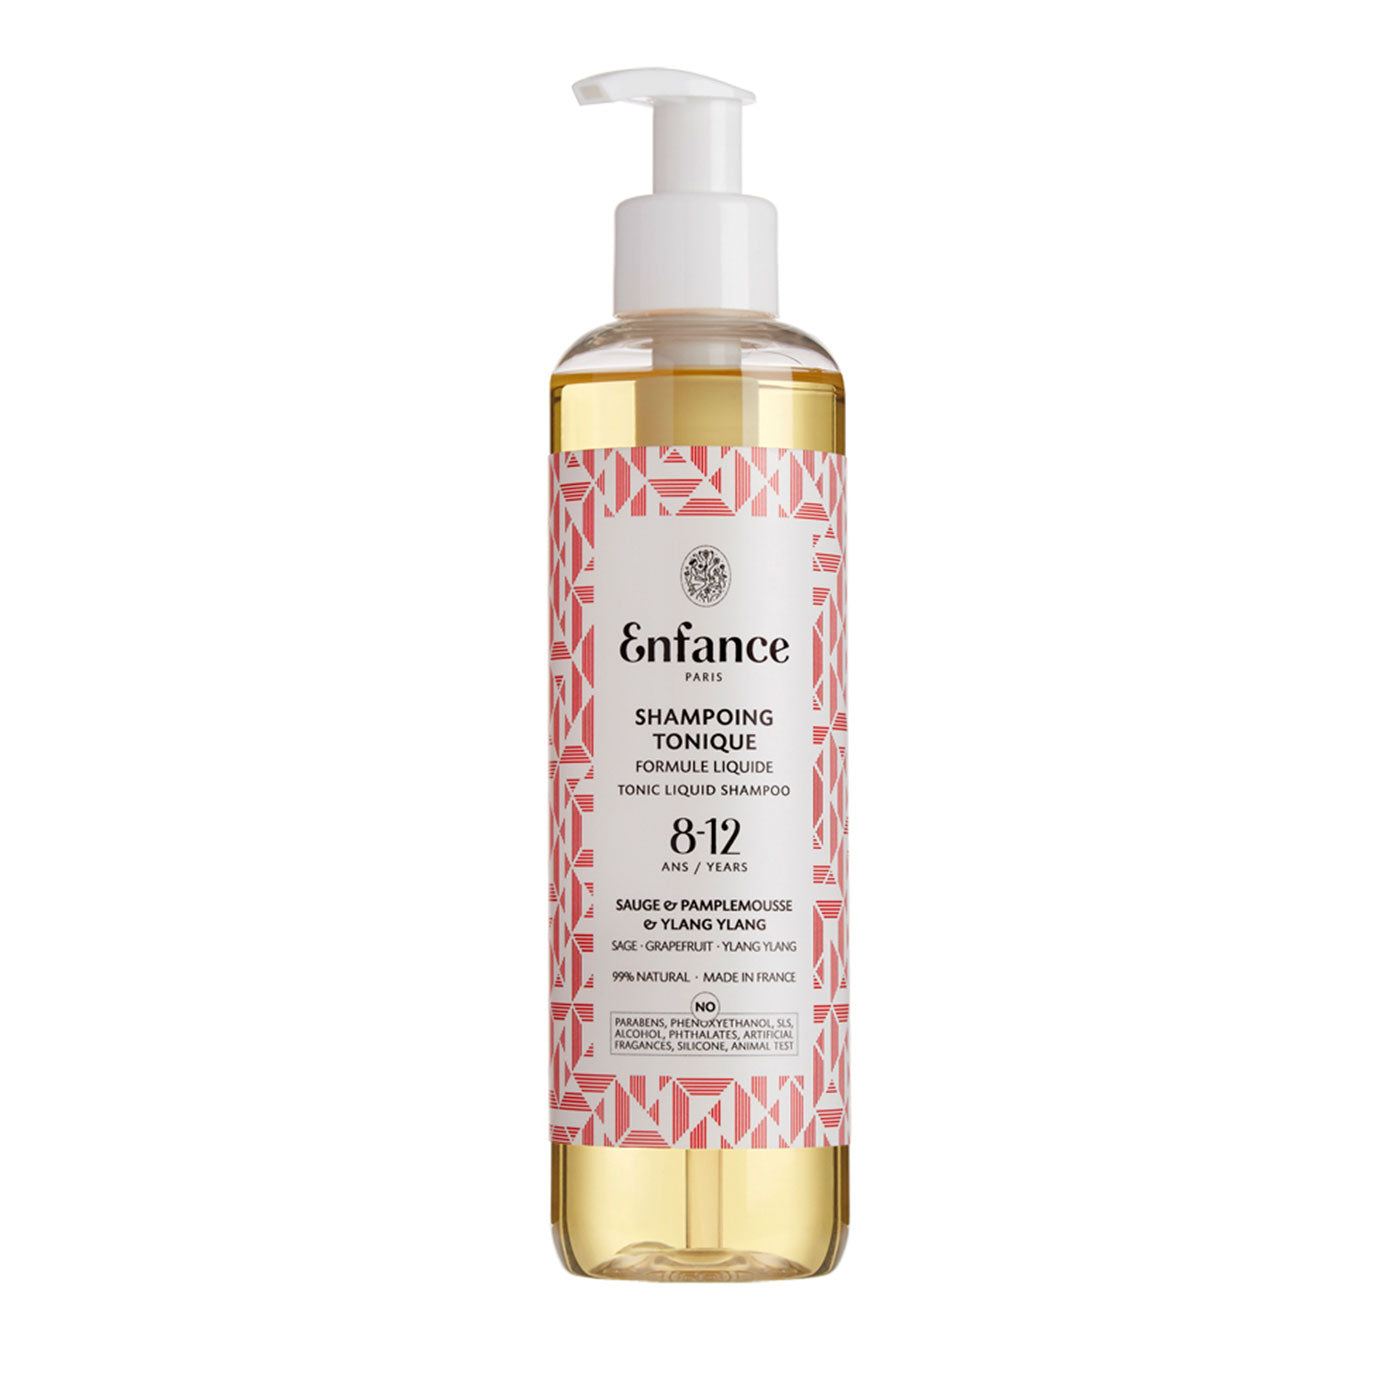 Enfance Paris Tonic Liquid Shampoo 8-12 Years 8.5oz 20475888435311